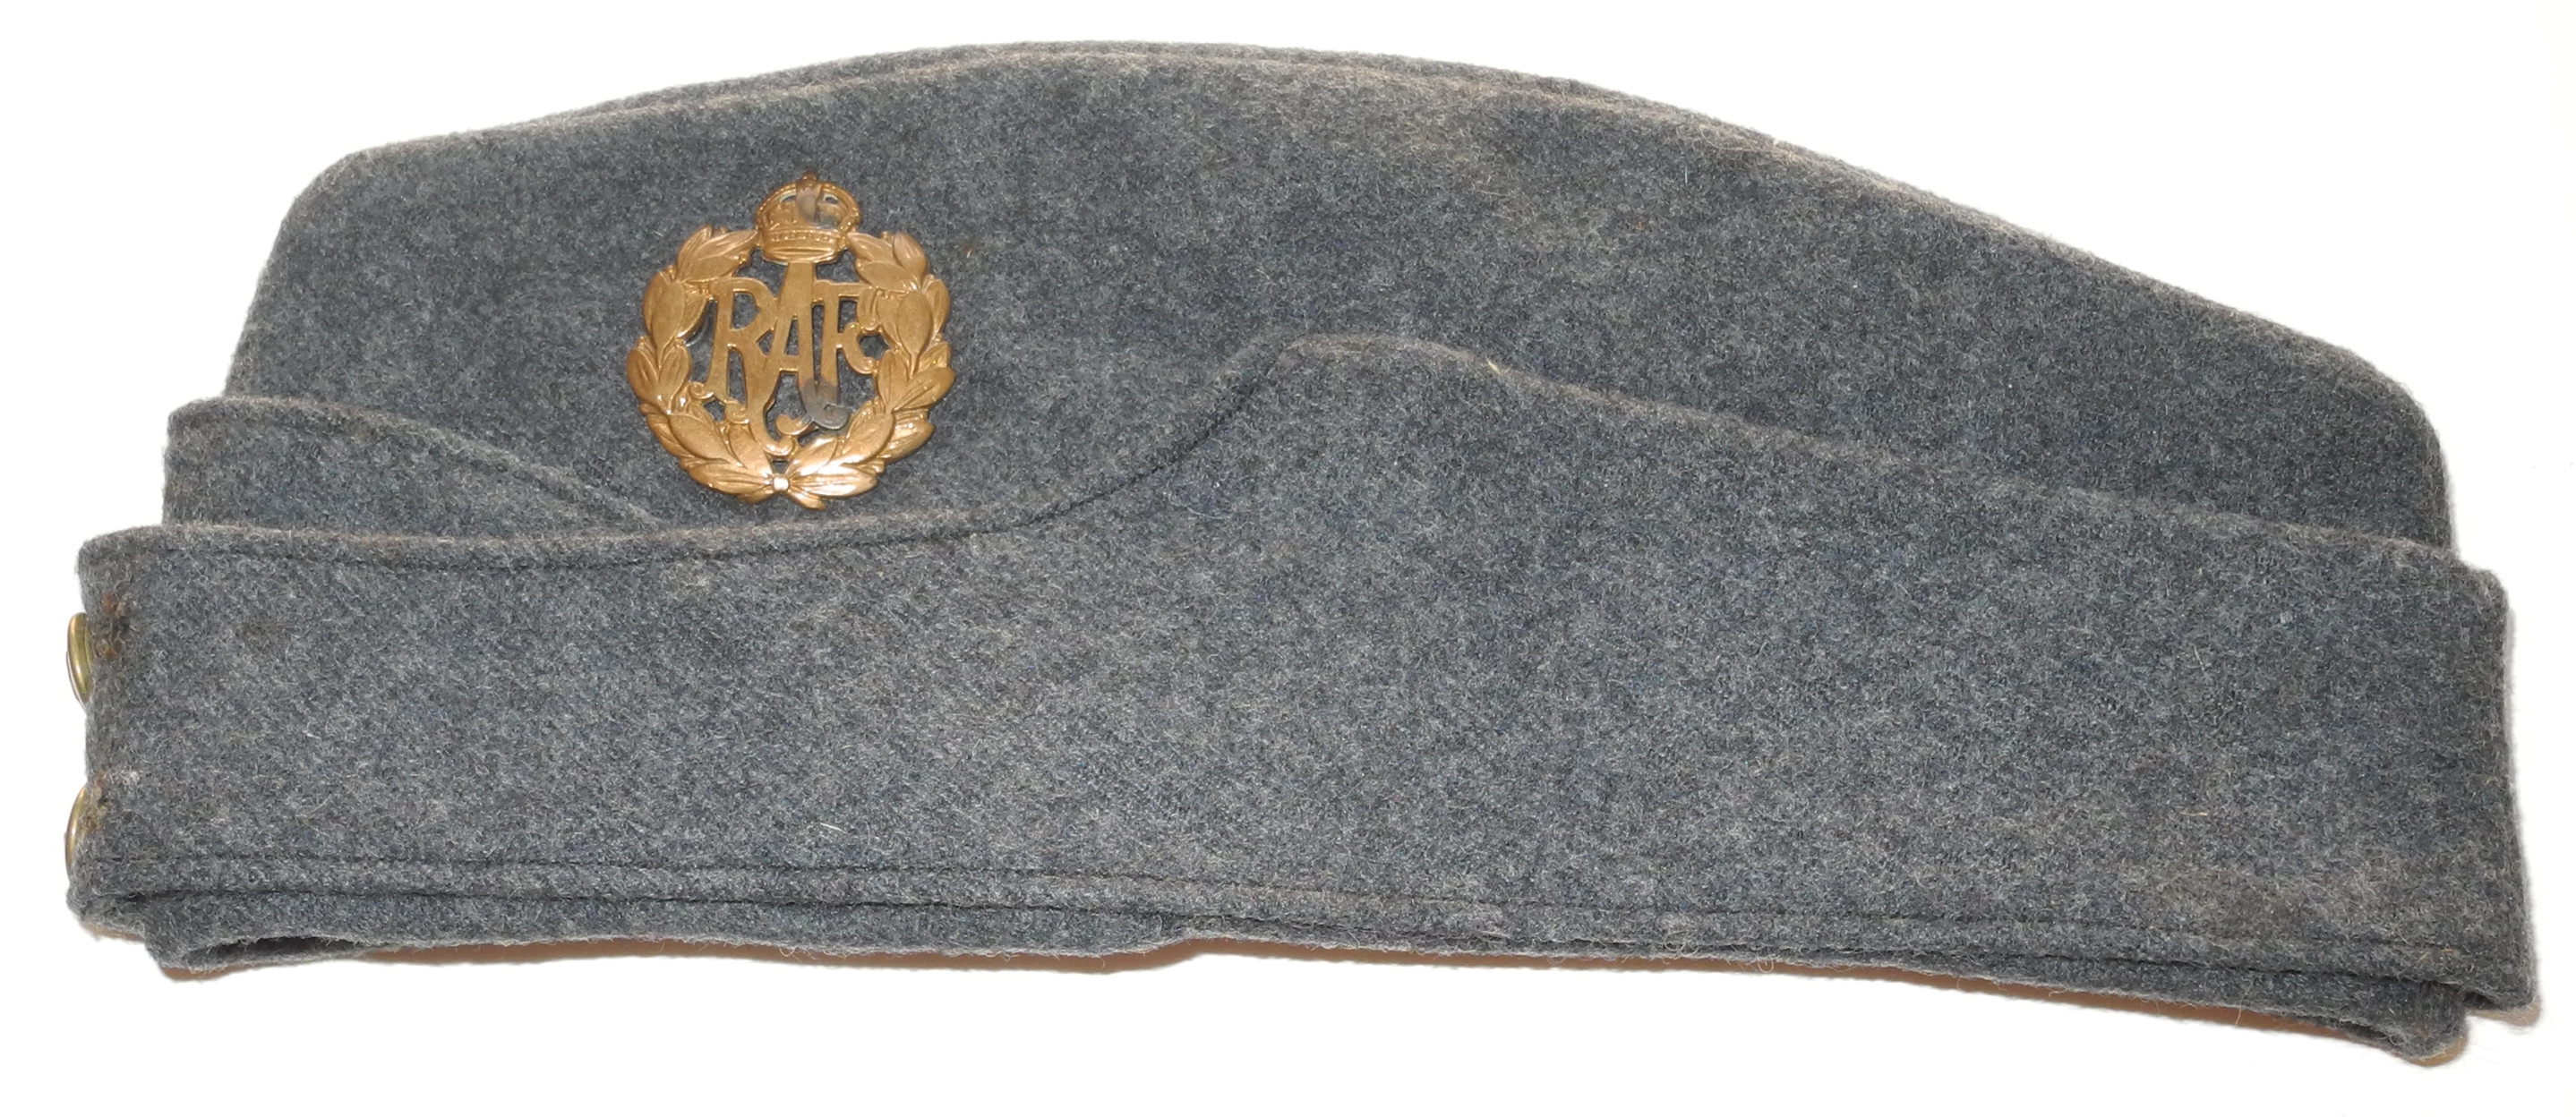 RAF 1940 dated other ranks side cap